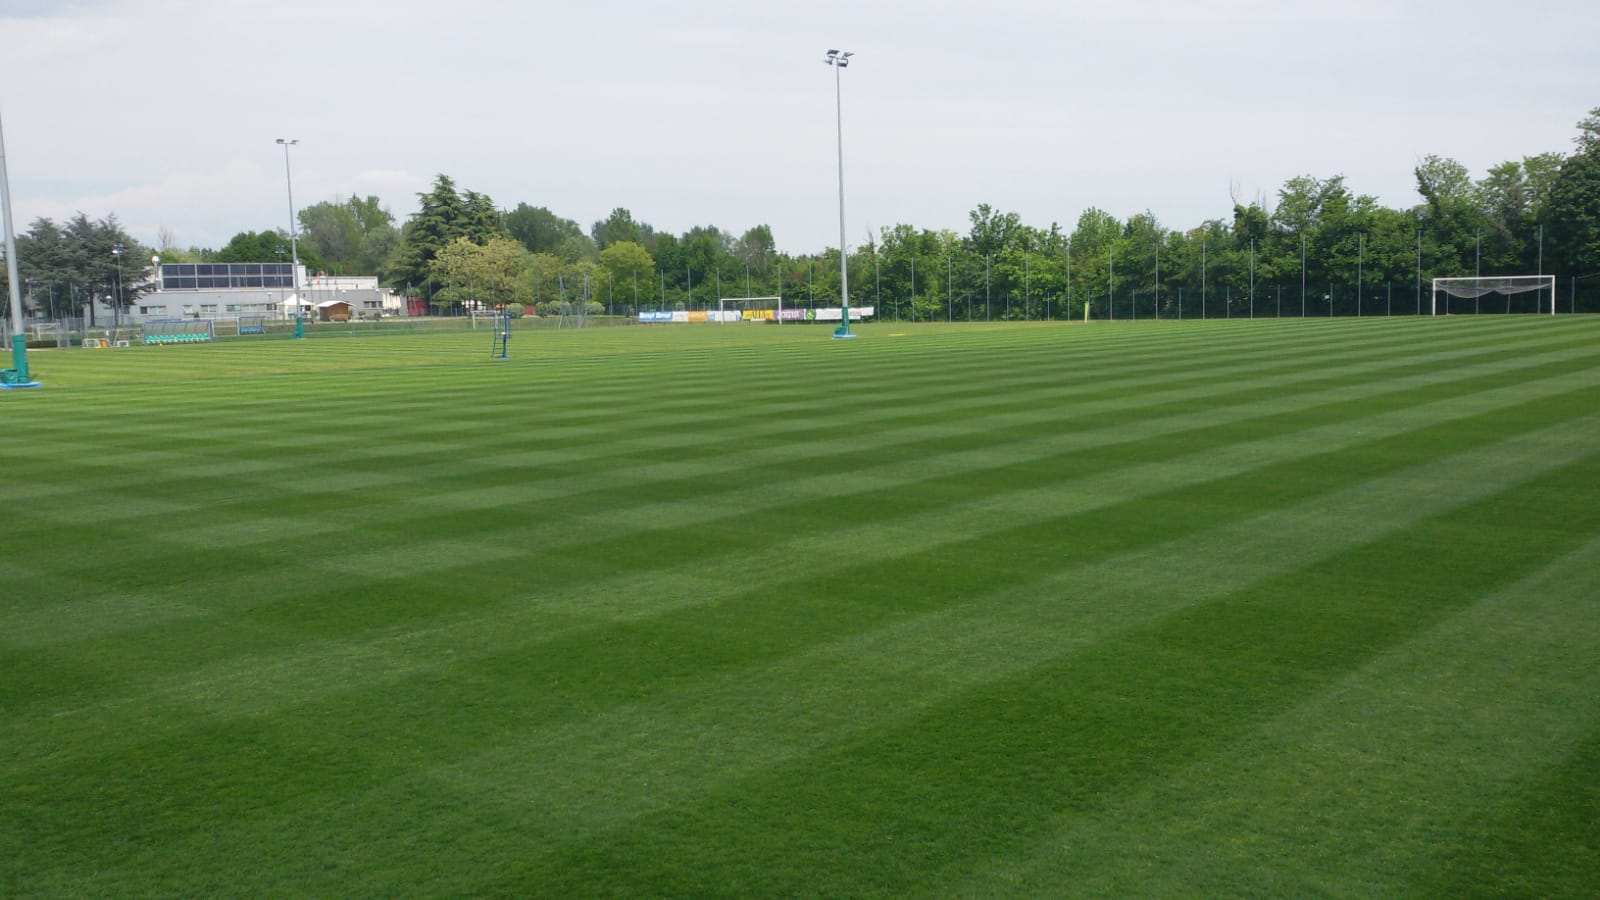 Campo POWERgrass di Pordenone - Estate 2020